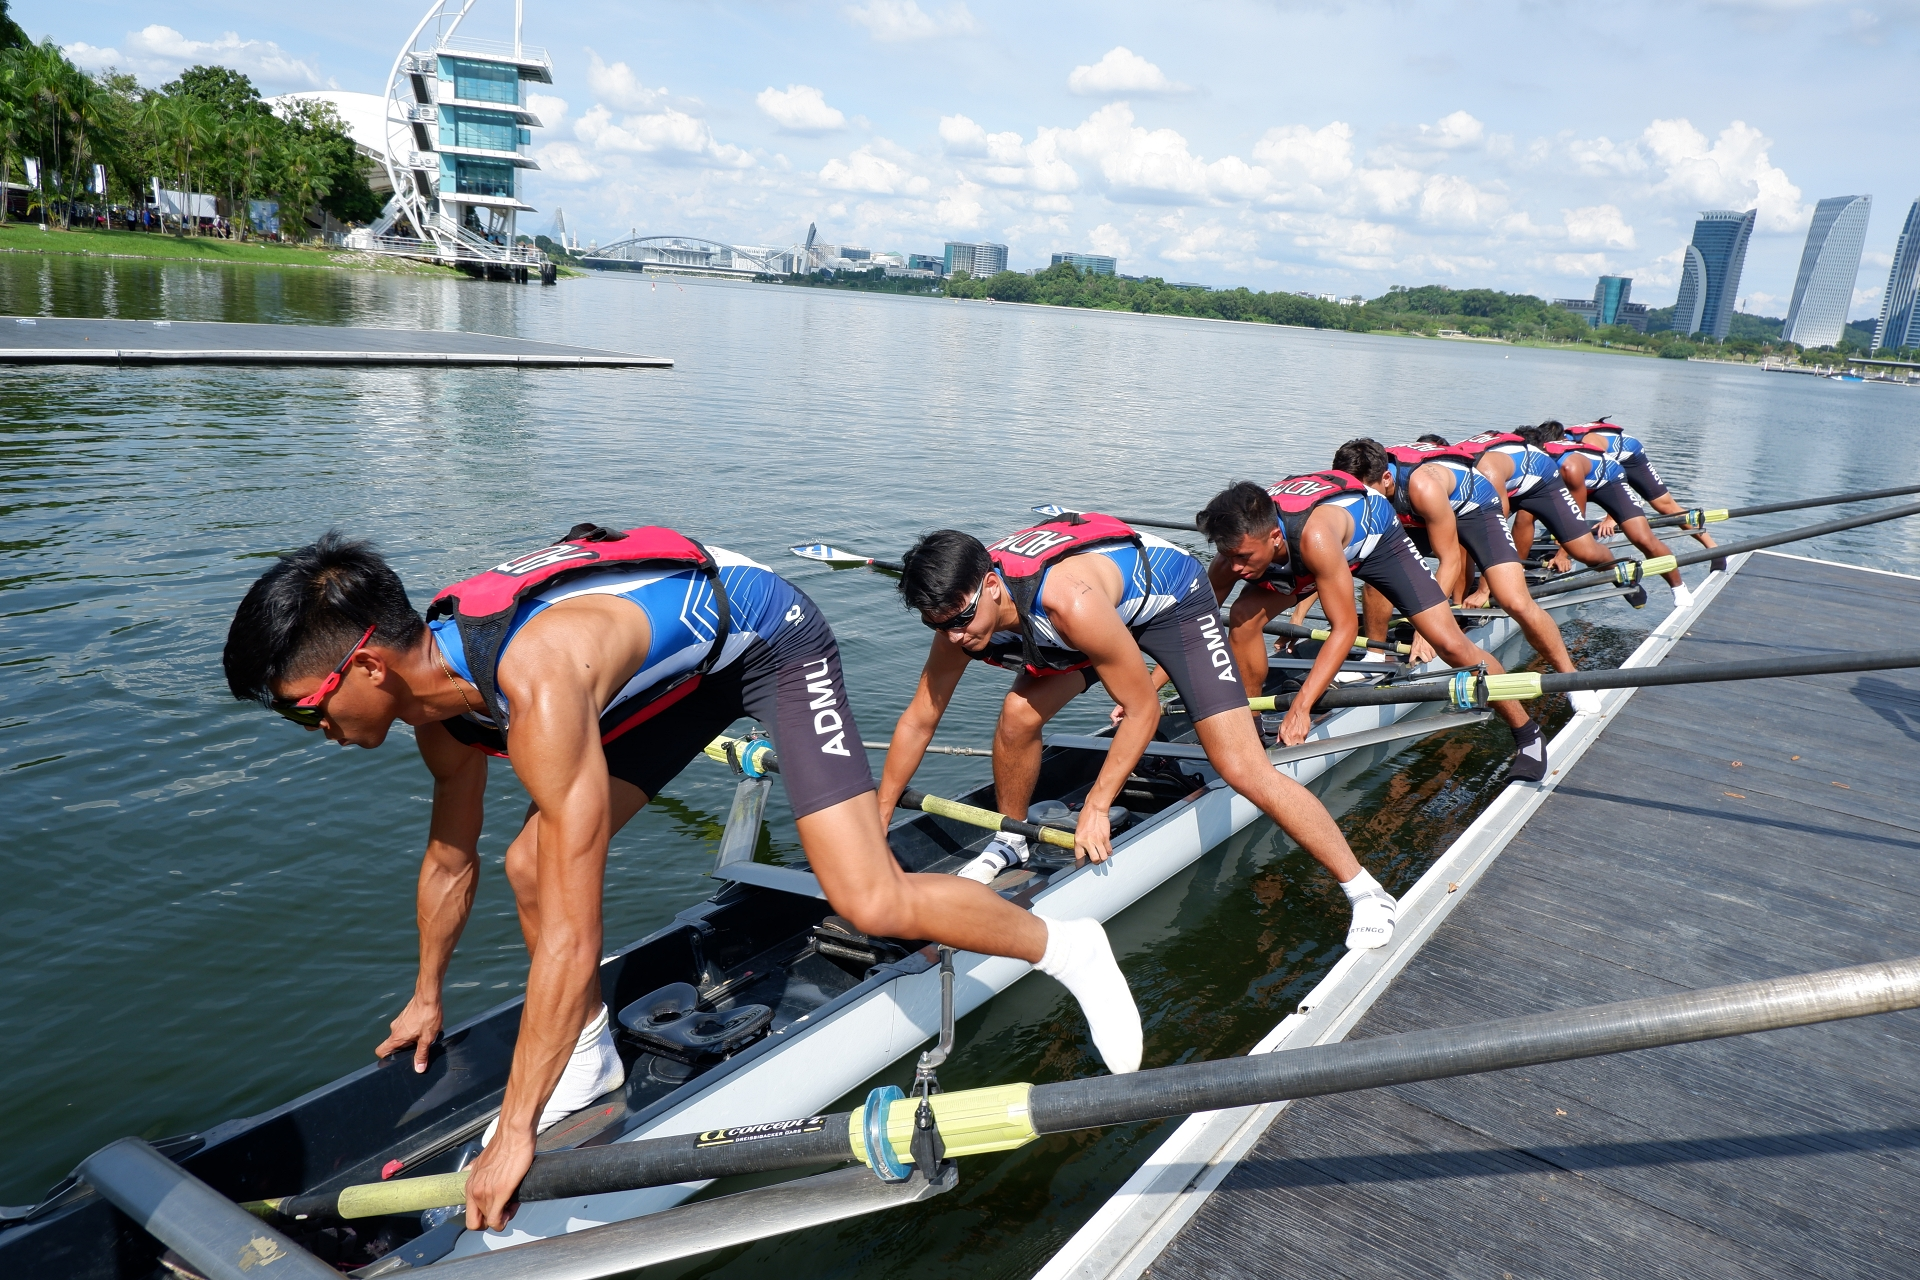 Members of the Ateneo Men's Rowing Team enter their boat at the Varsity Boat Race in Malaysia